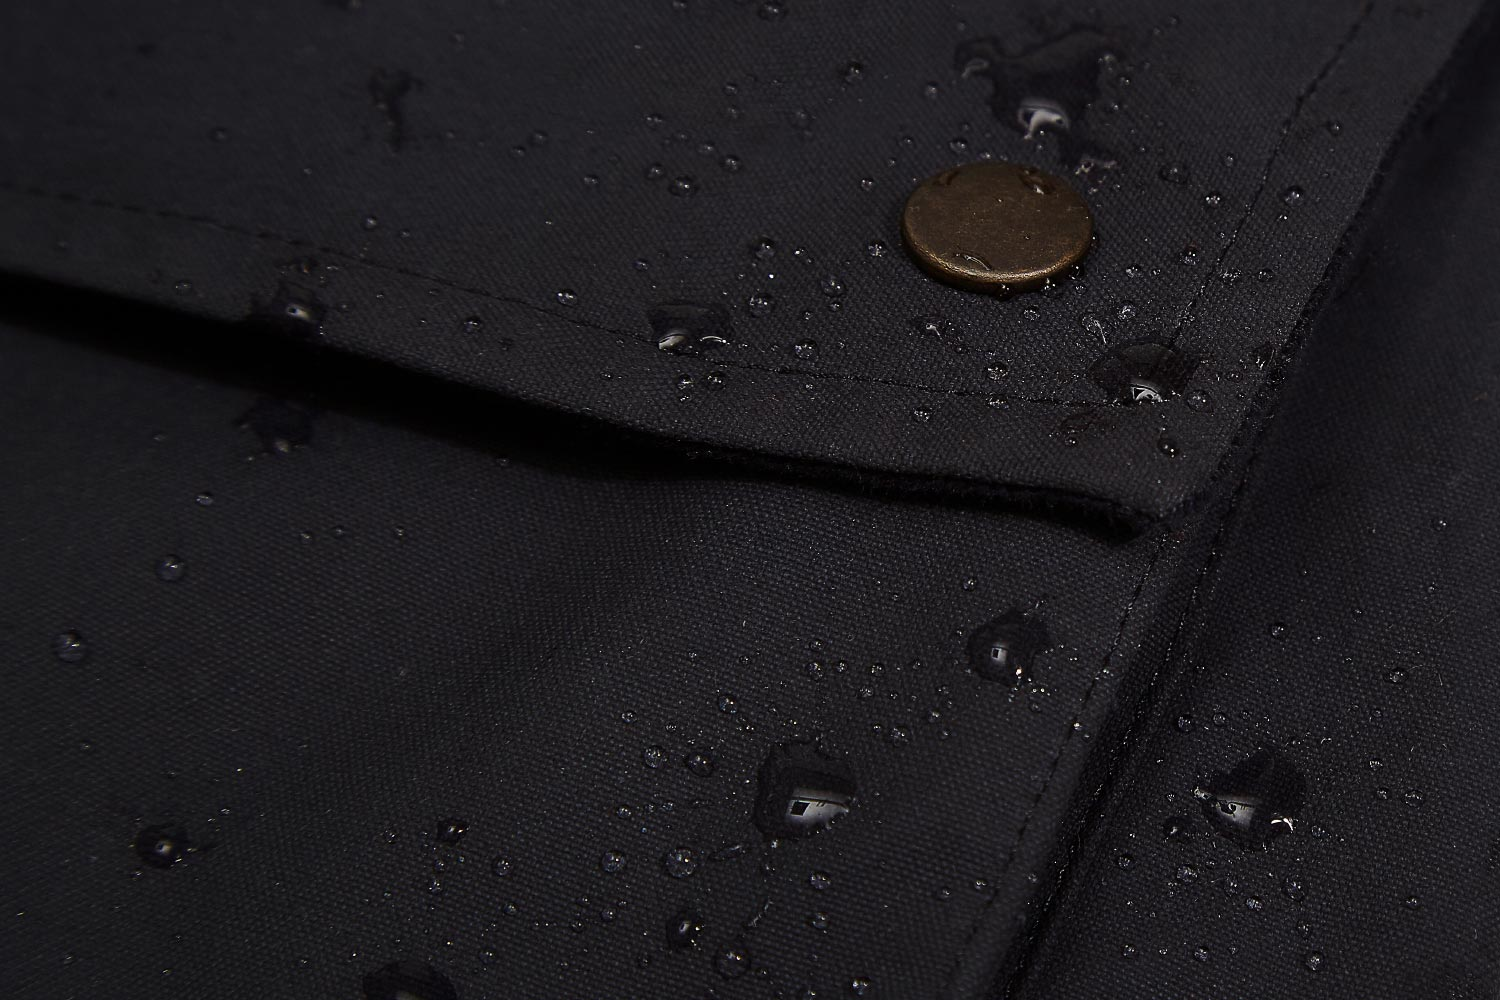 Seam sealed drop liner sits behind the waxed canvas outer. Proven to keep Eversholt Jacket fully waterproof.